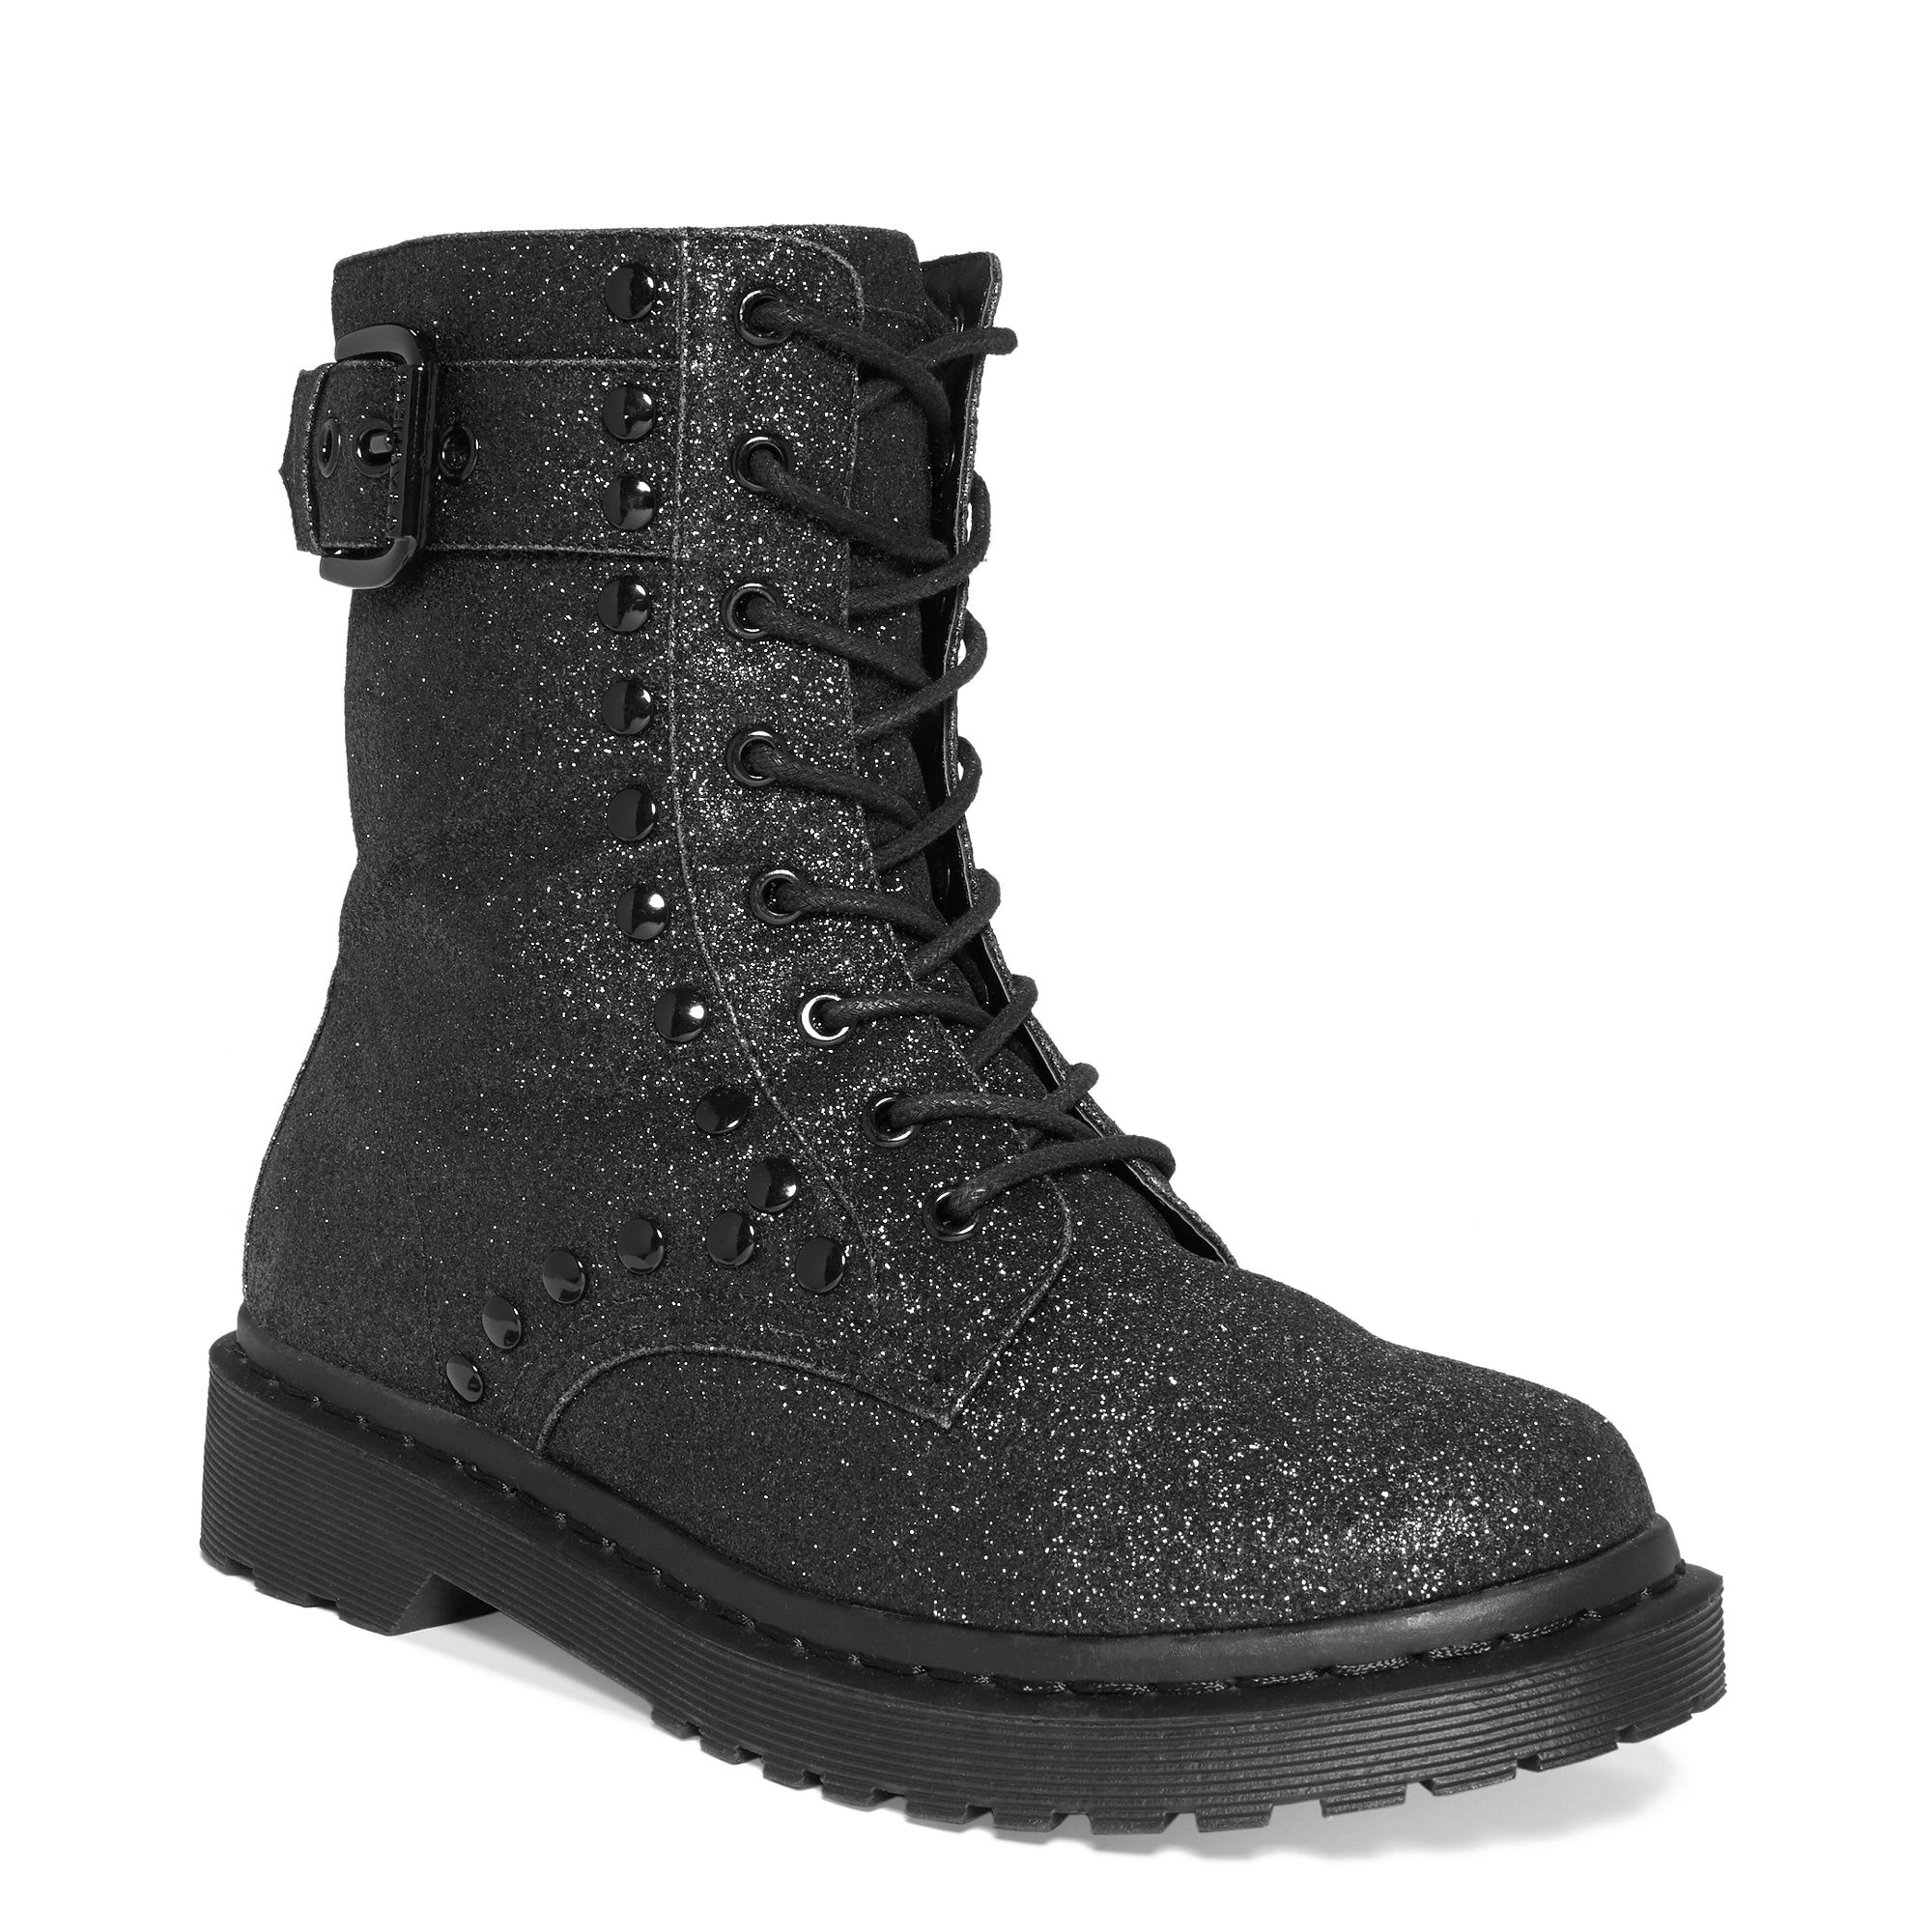 8eab6d5fad5f G by Guess G By Guess Boots Techno Glitter Booties in Black - Lyst